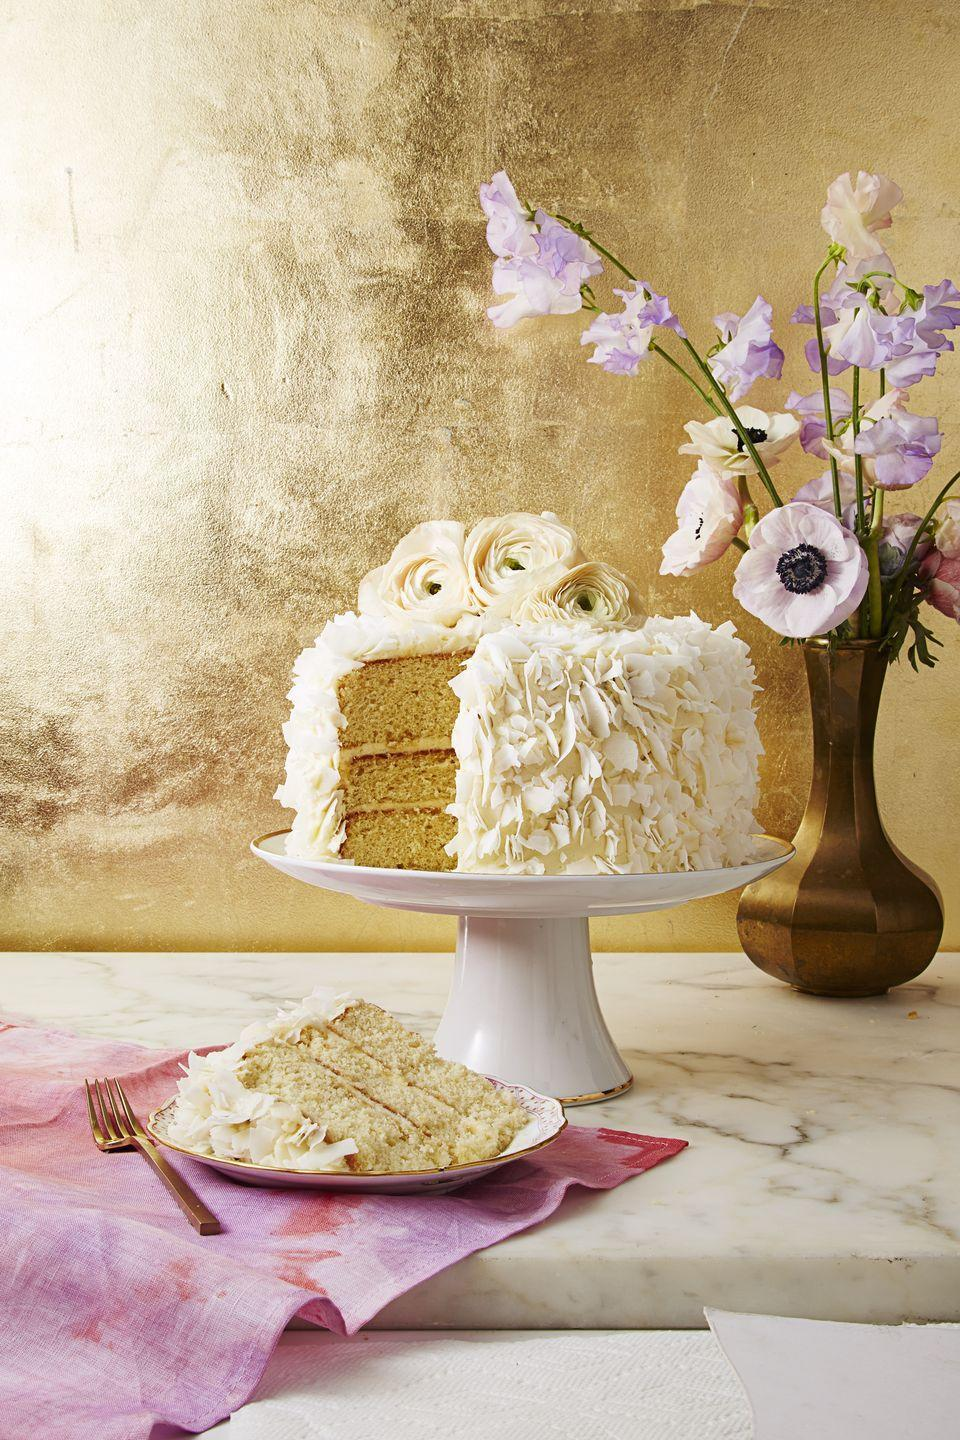 """<p>This showstopper makes for the ultimate ending to Easter dinner.</p><p><em><a href=""""https://www.goodhousekeeping.com/food-recipes/a37460/coconut-layer-cake-with-cream-cheese-frosting-recipe/"""" rel=""""nofollow noopener"""" target=""""_blank"""" data-ylk=""""slk:Get the recipe for Coconut Layer Cake With Cream Cheese Frosting »"""" class=""""link rapid-noclick-resp"""">Get the recipe for Coconut Layer Cake With Cream Cheese Frosting »</a></em></p>"""